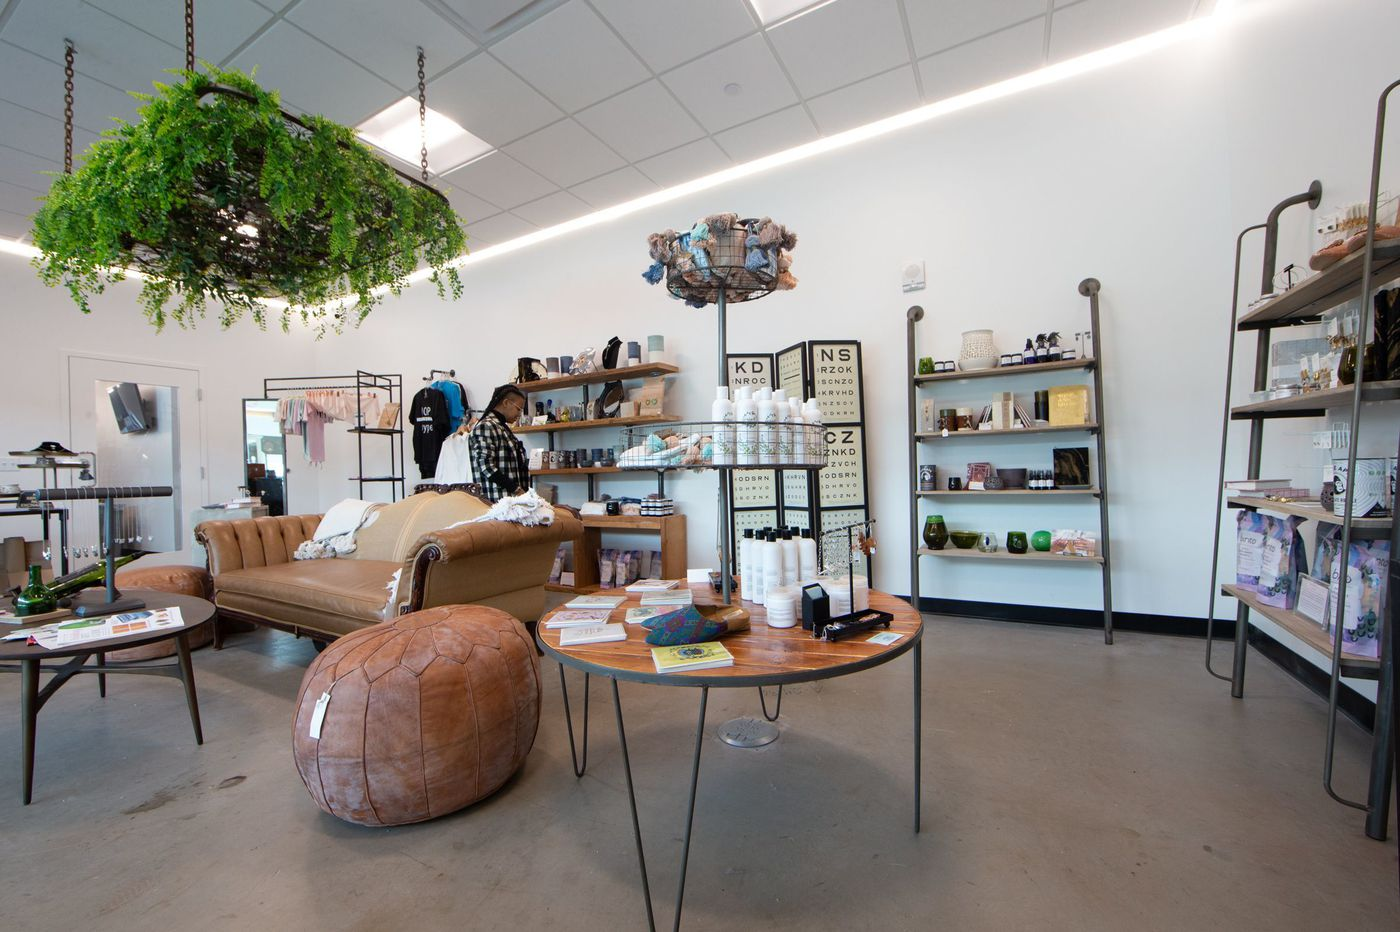 Startup incubator 1776 opens at Cherry Hill Mall, making the mall more than just a place to shop